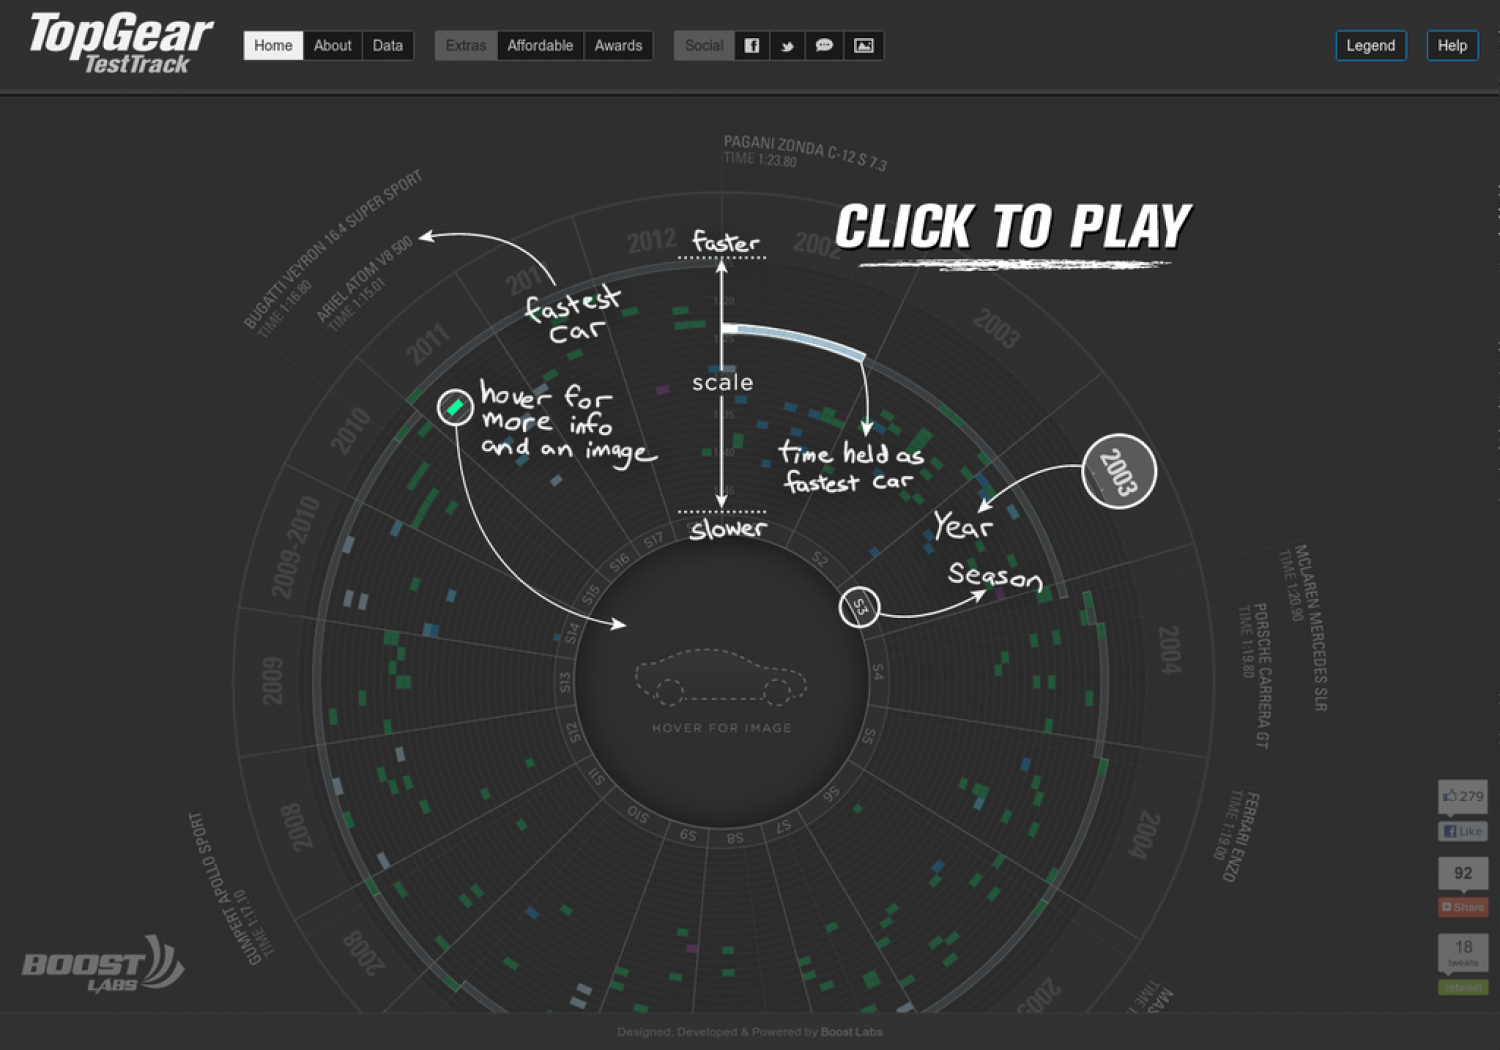 Top Gear Test Track (Interactive) Infographic